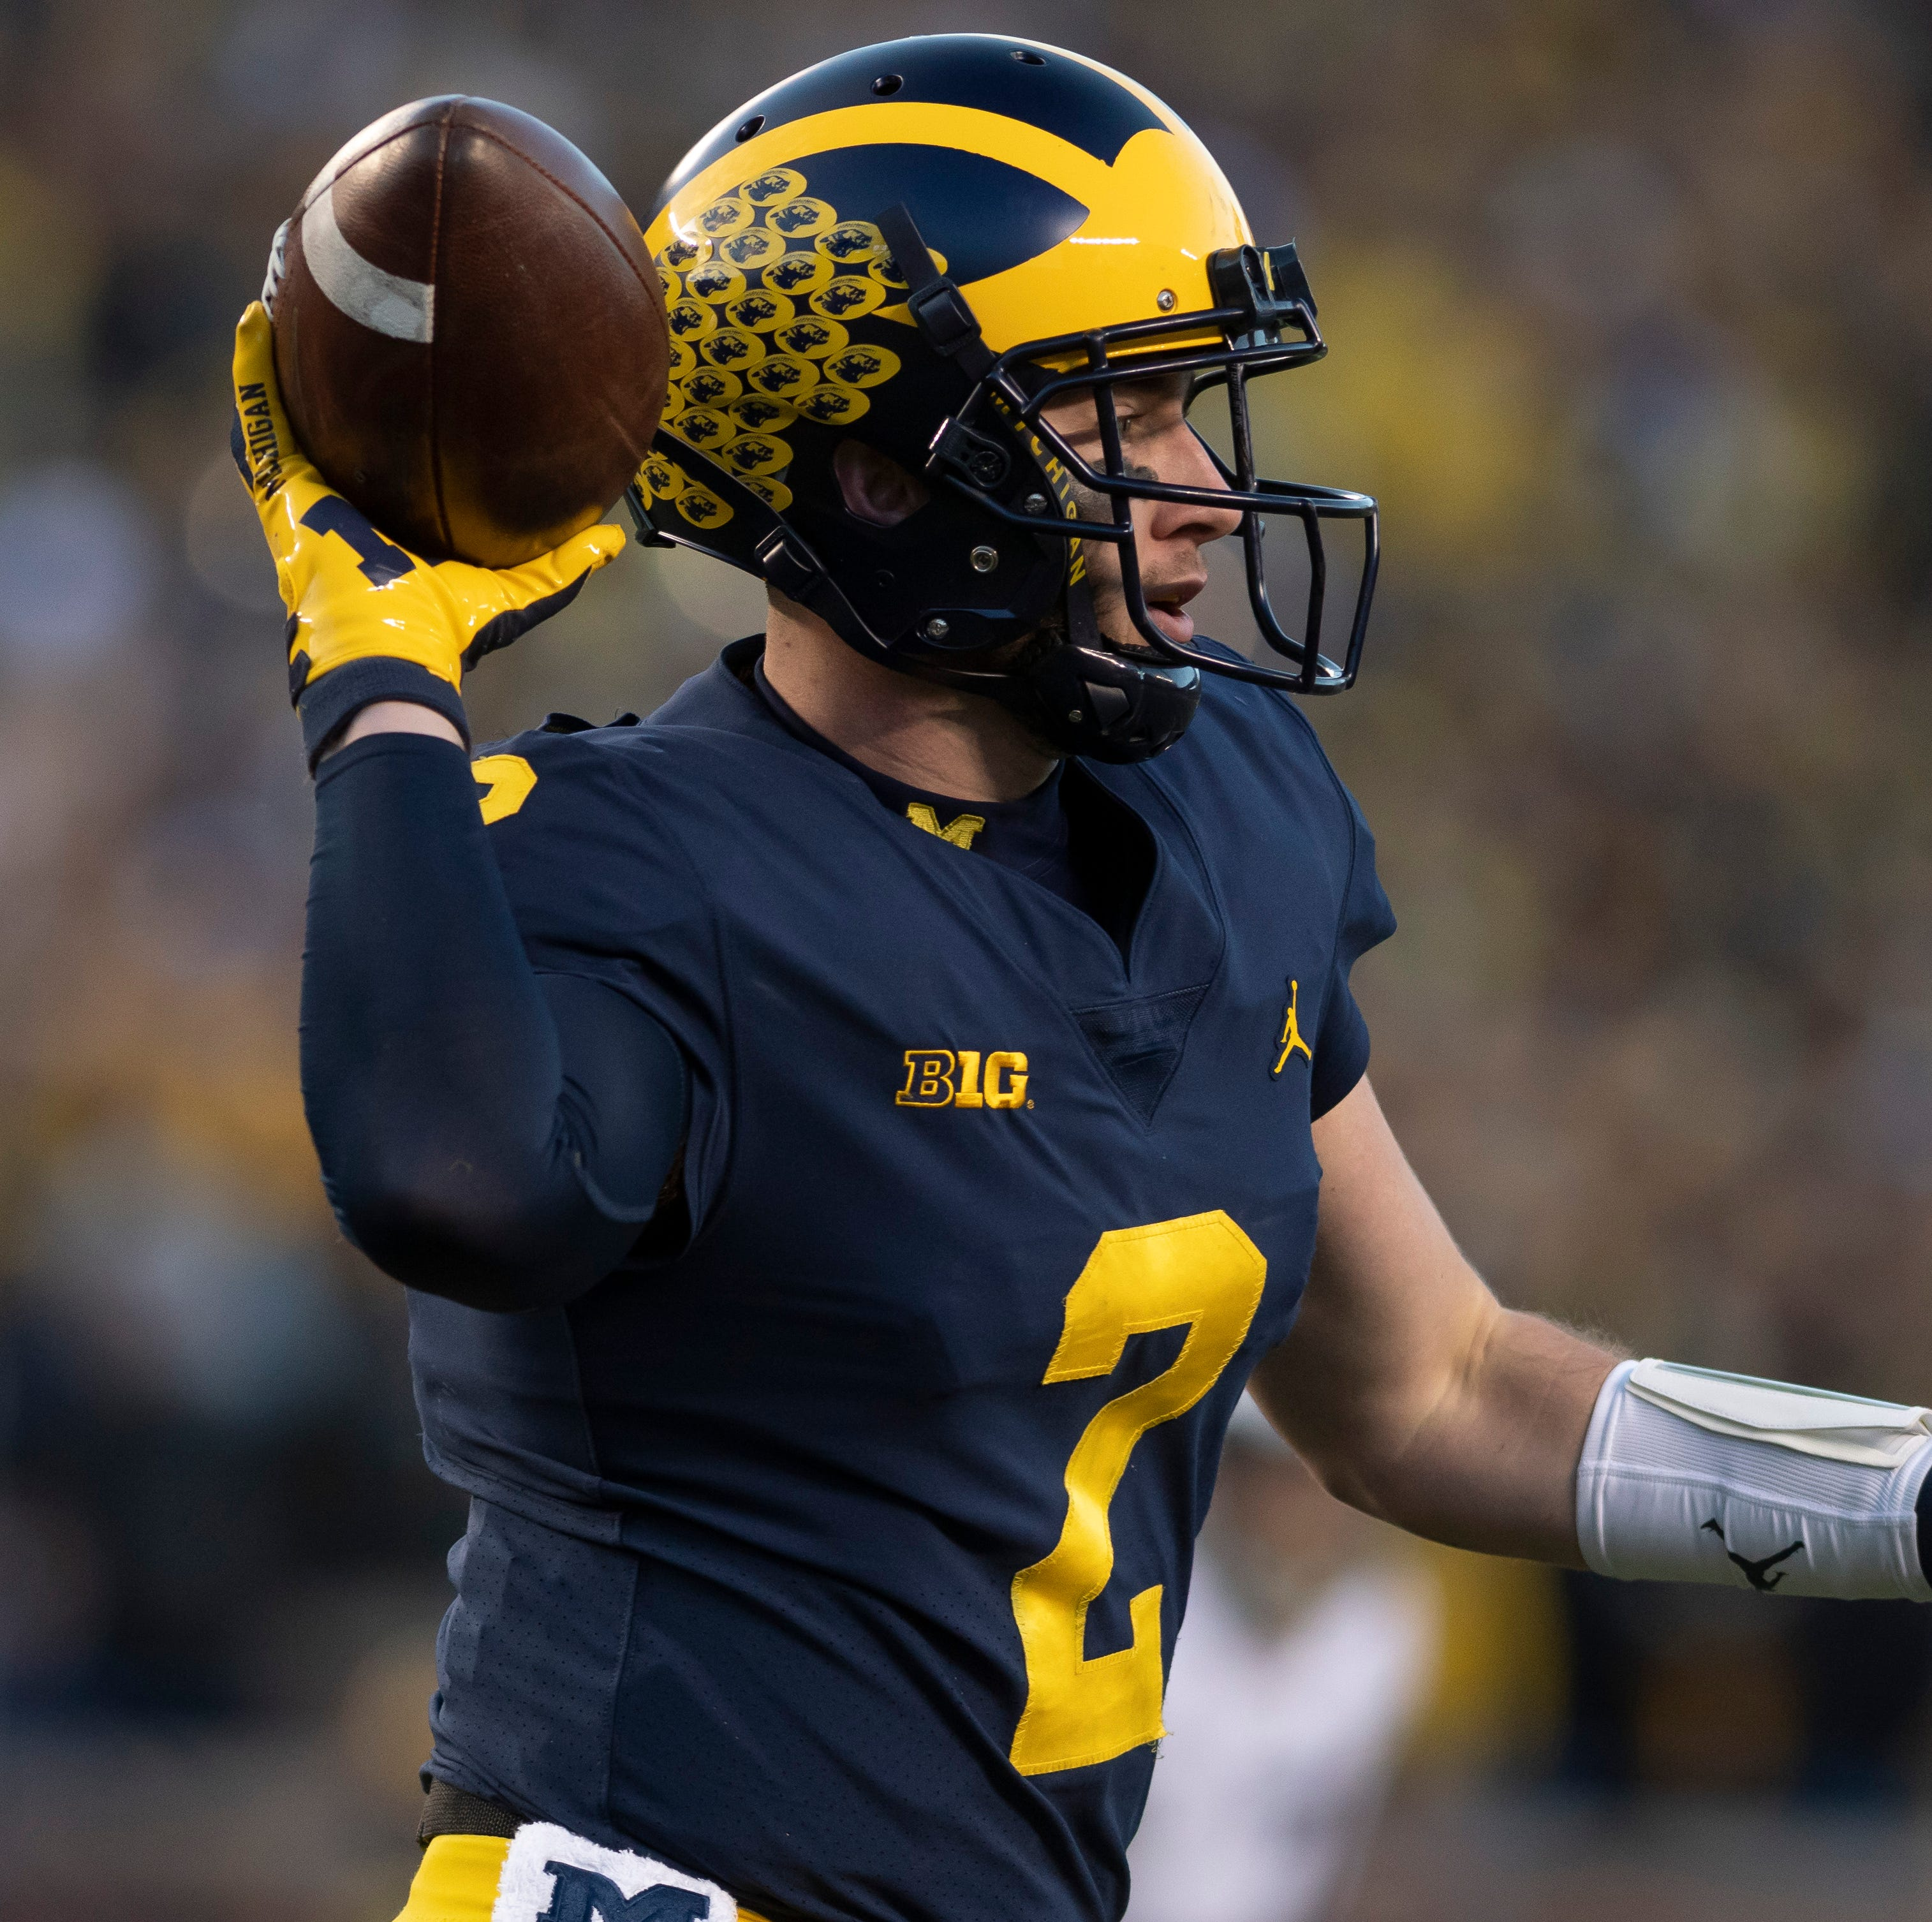 Patterson's Big House adieu? Michigan QB won't go there